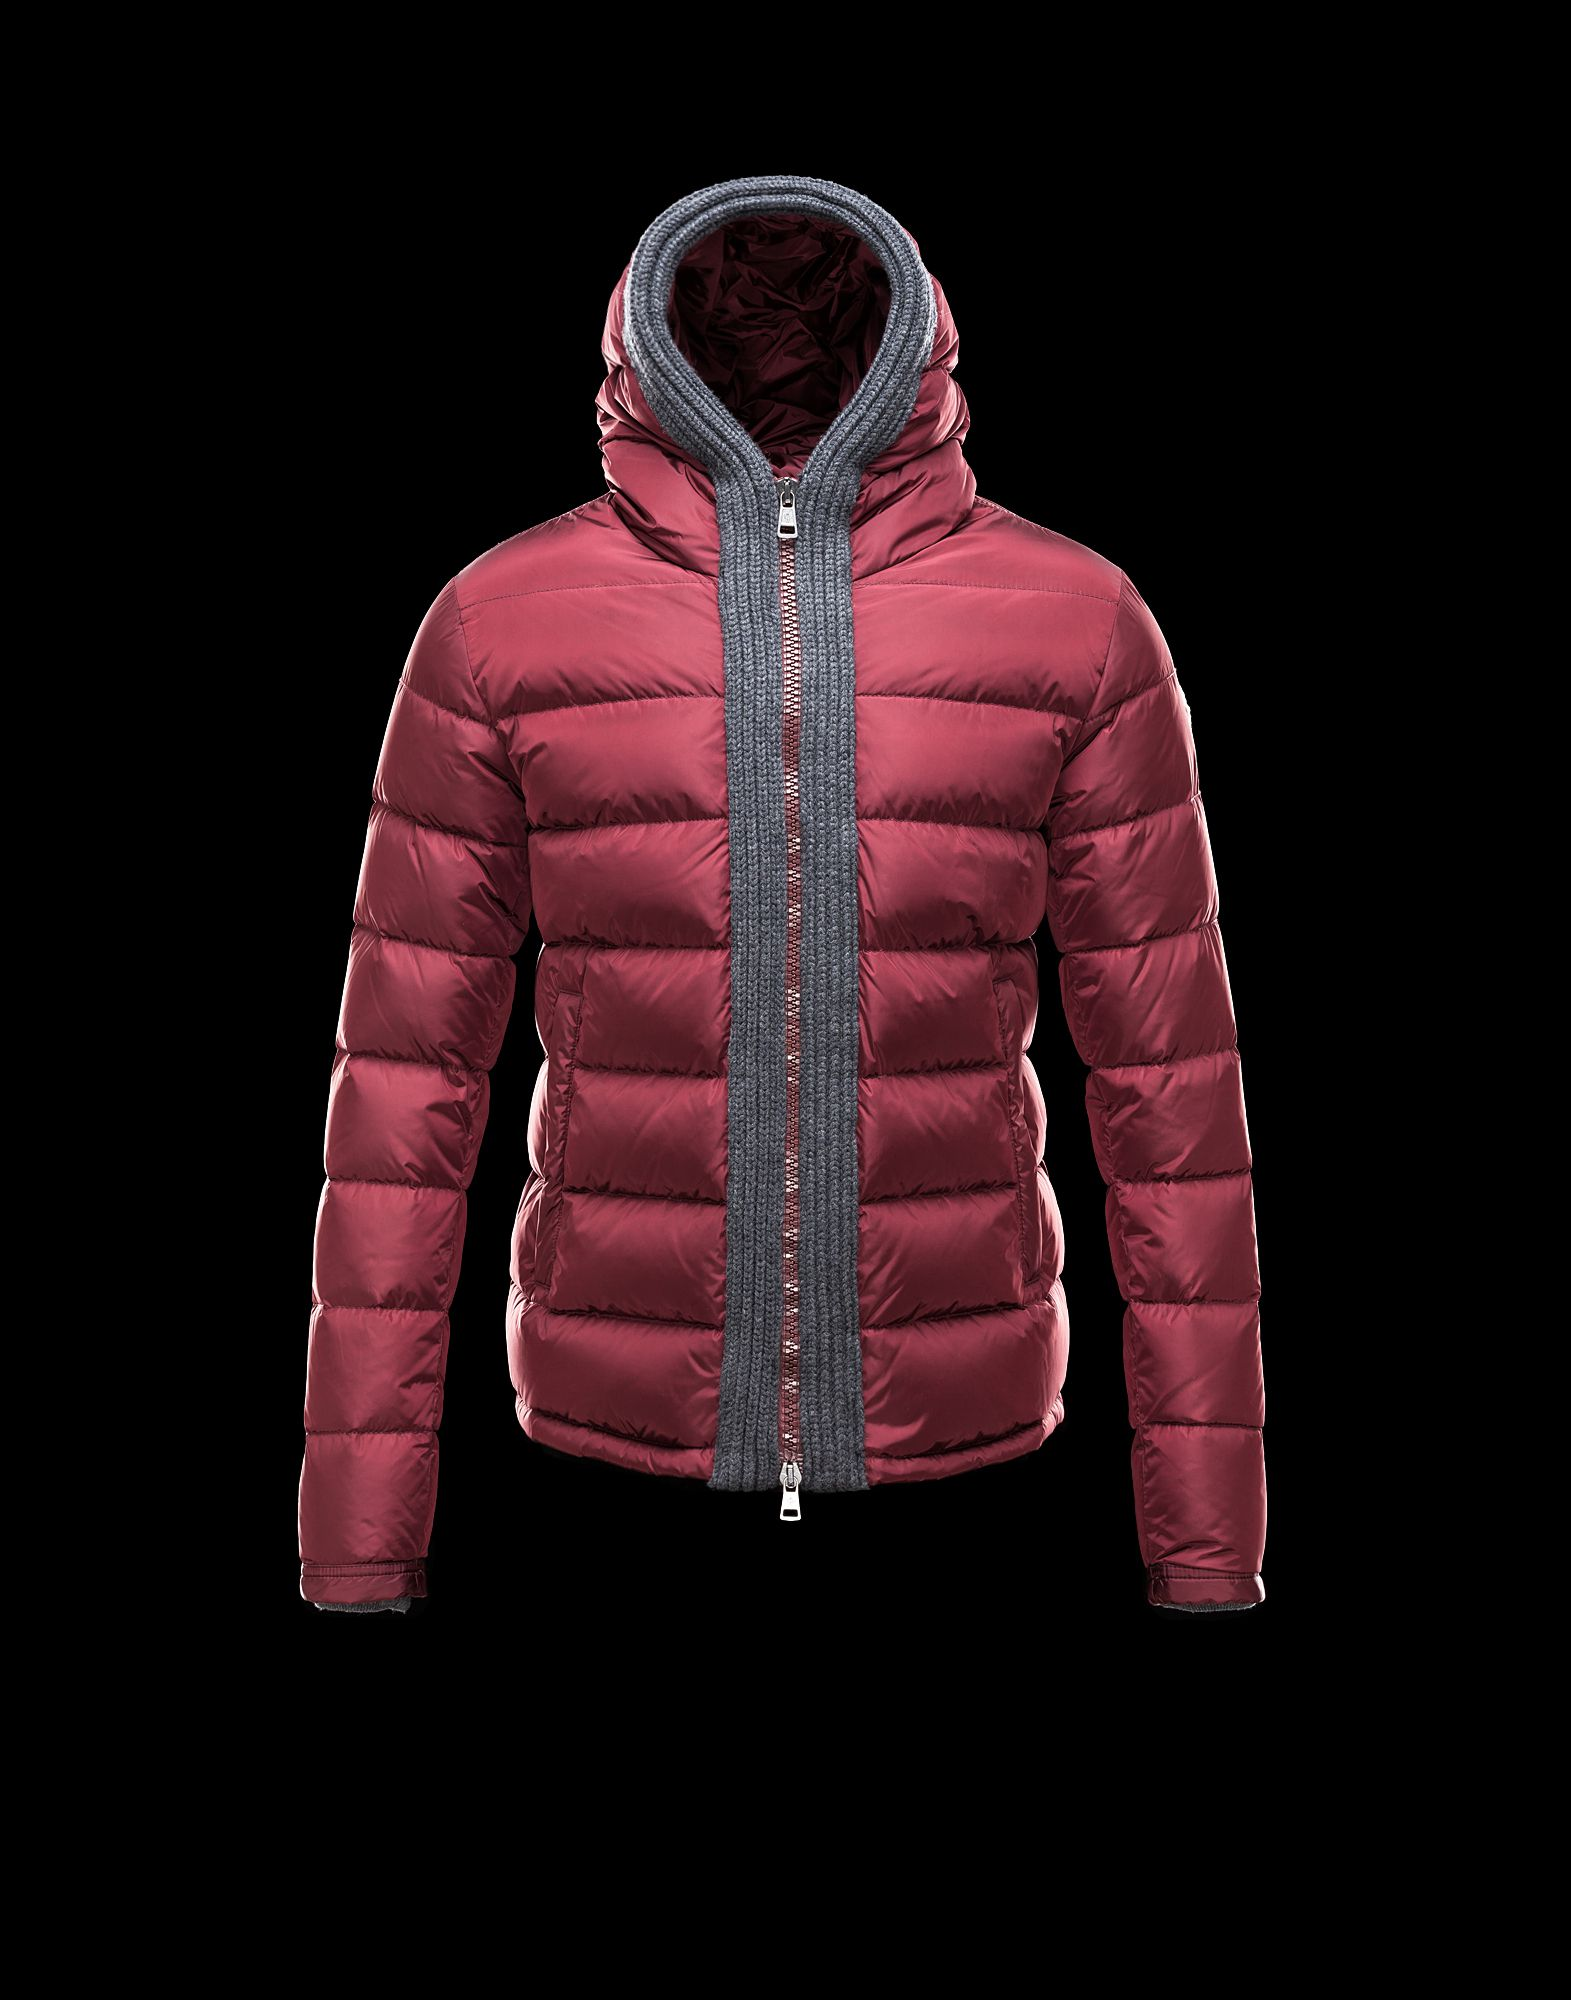 Moncler Men's Down Jacket Men's Hooded Jacket